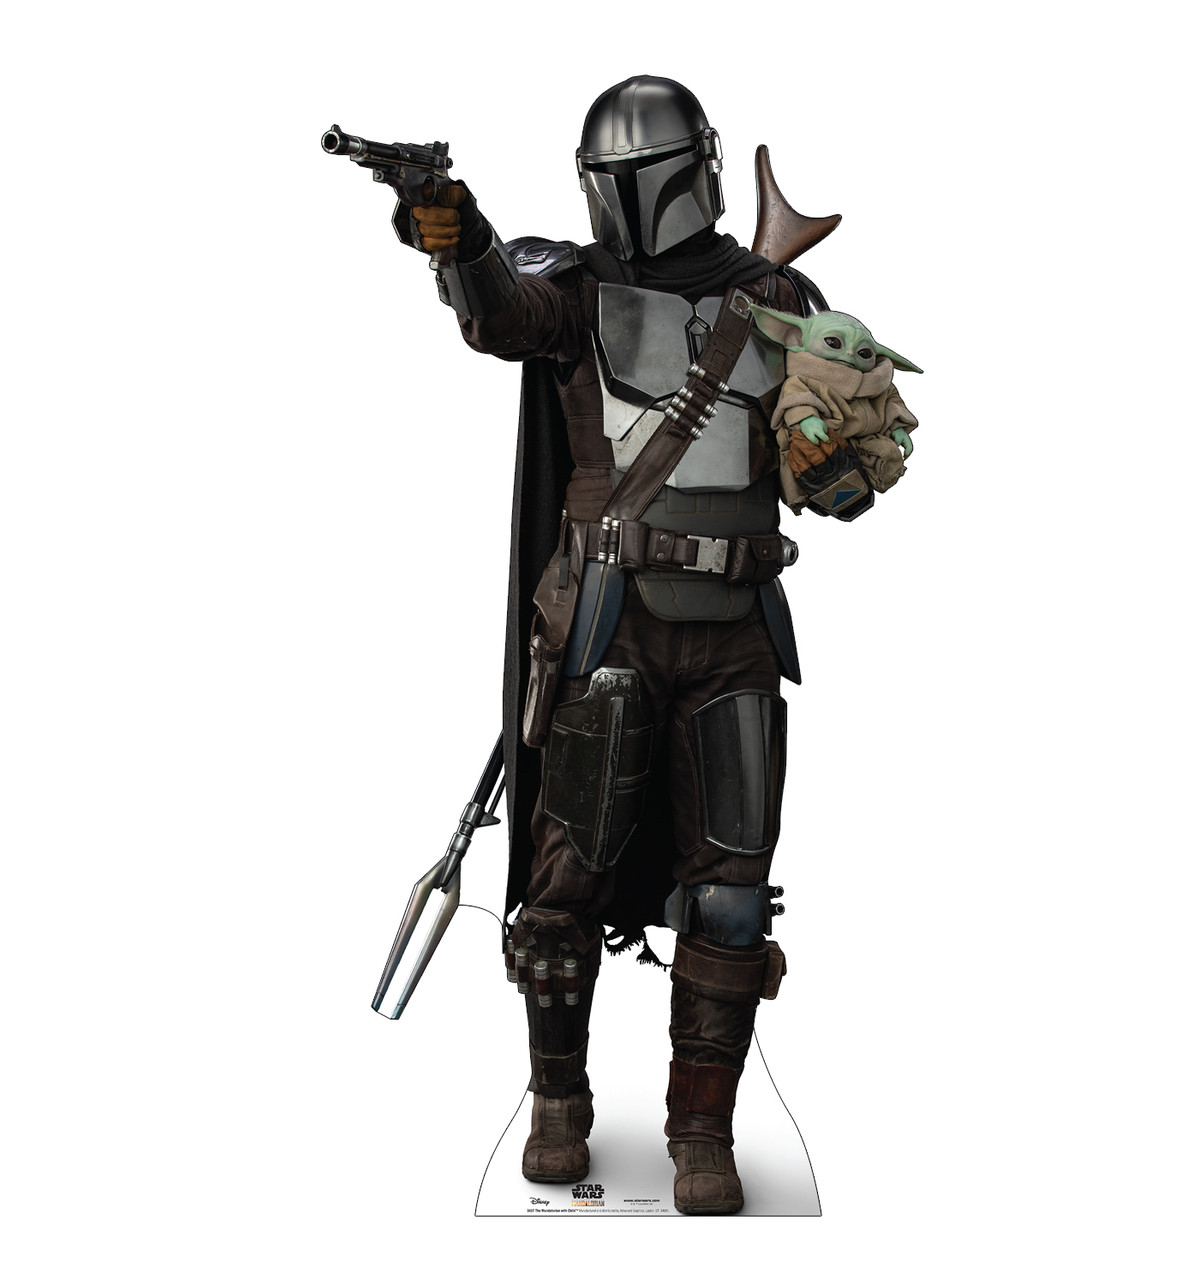 Life-size cardboard standee of The Mandalorian with Child.